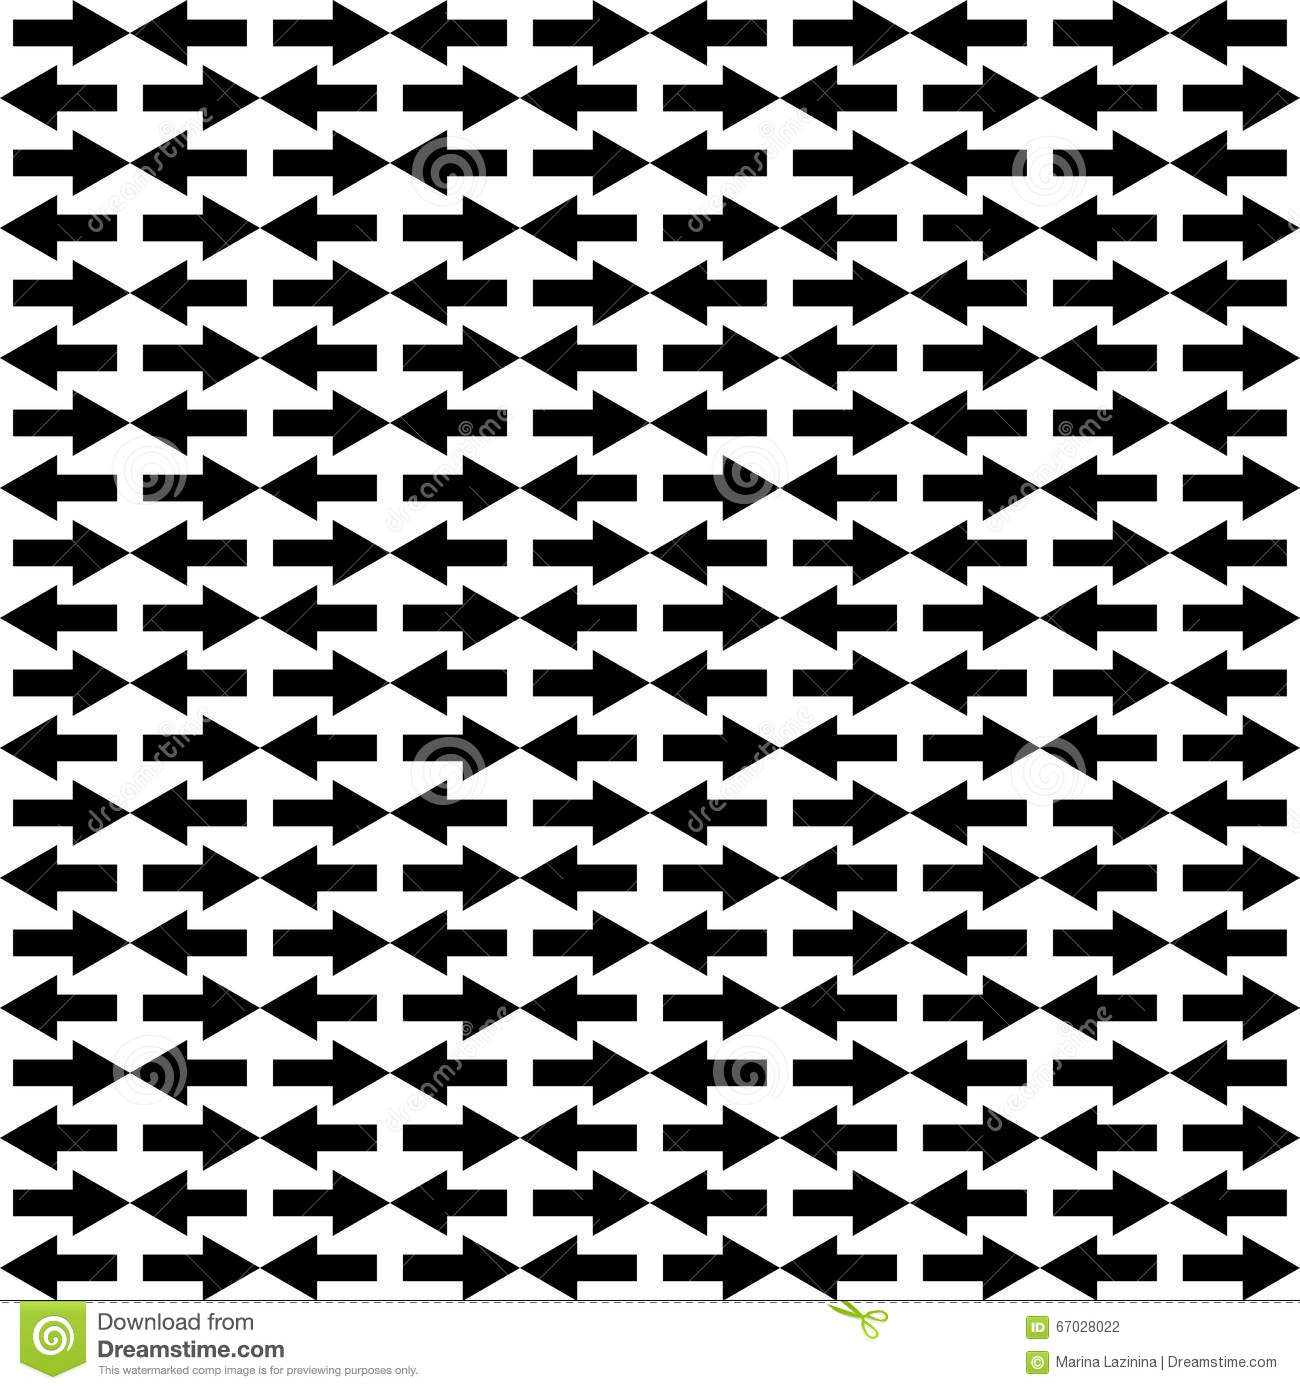 Seamless Black And White Background With Abstract Geometric Shapes ... for Geometric Shapes Design Black And White  186ref